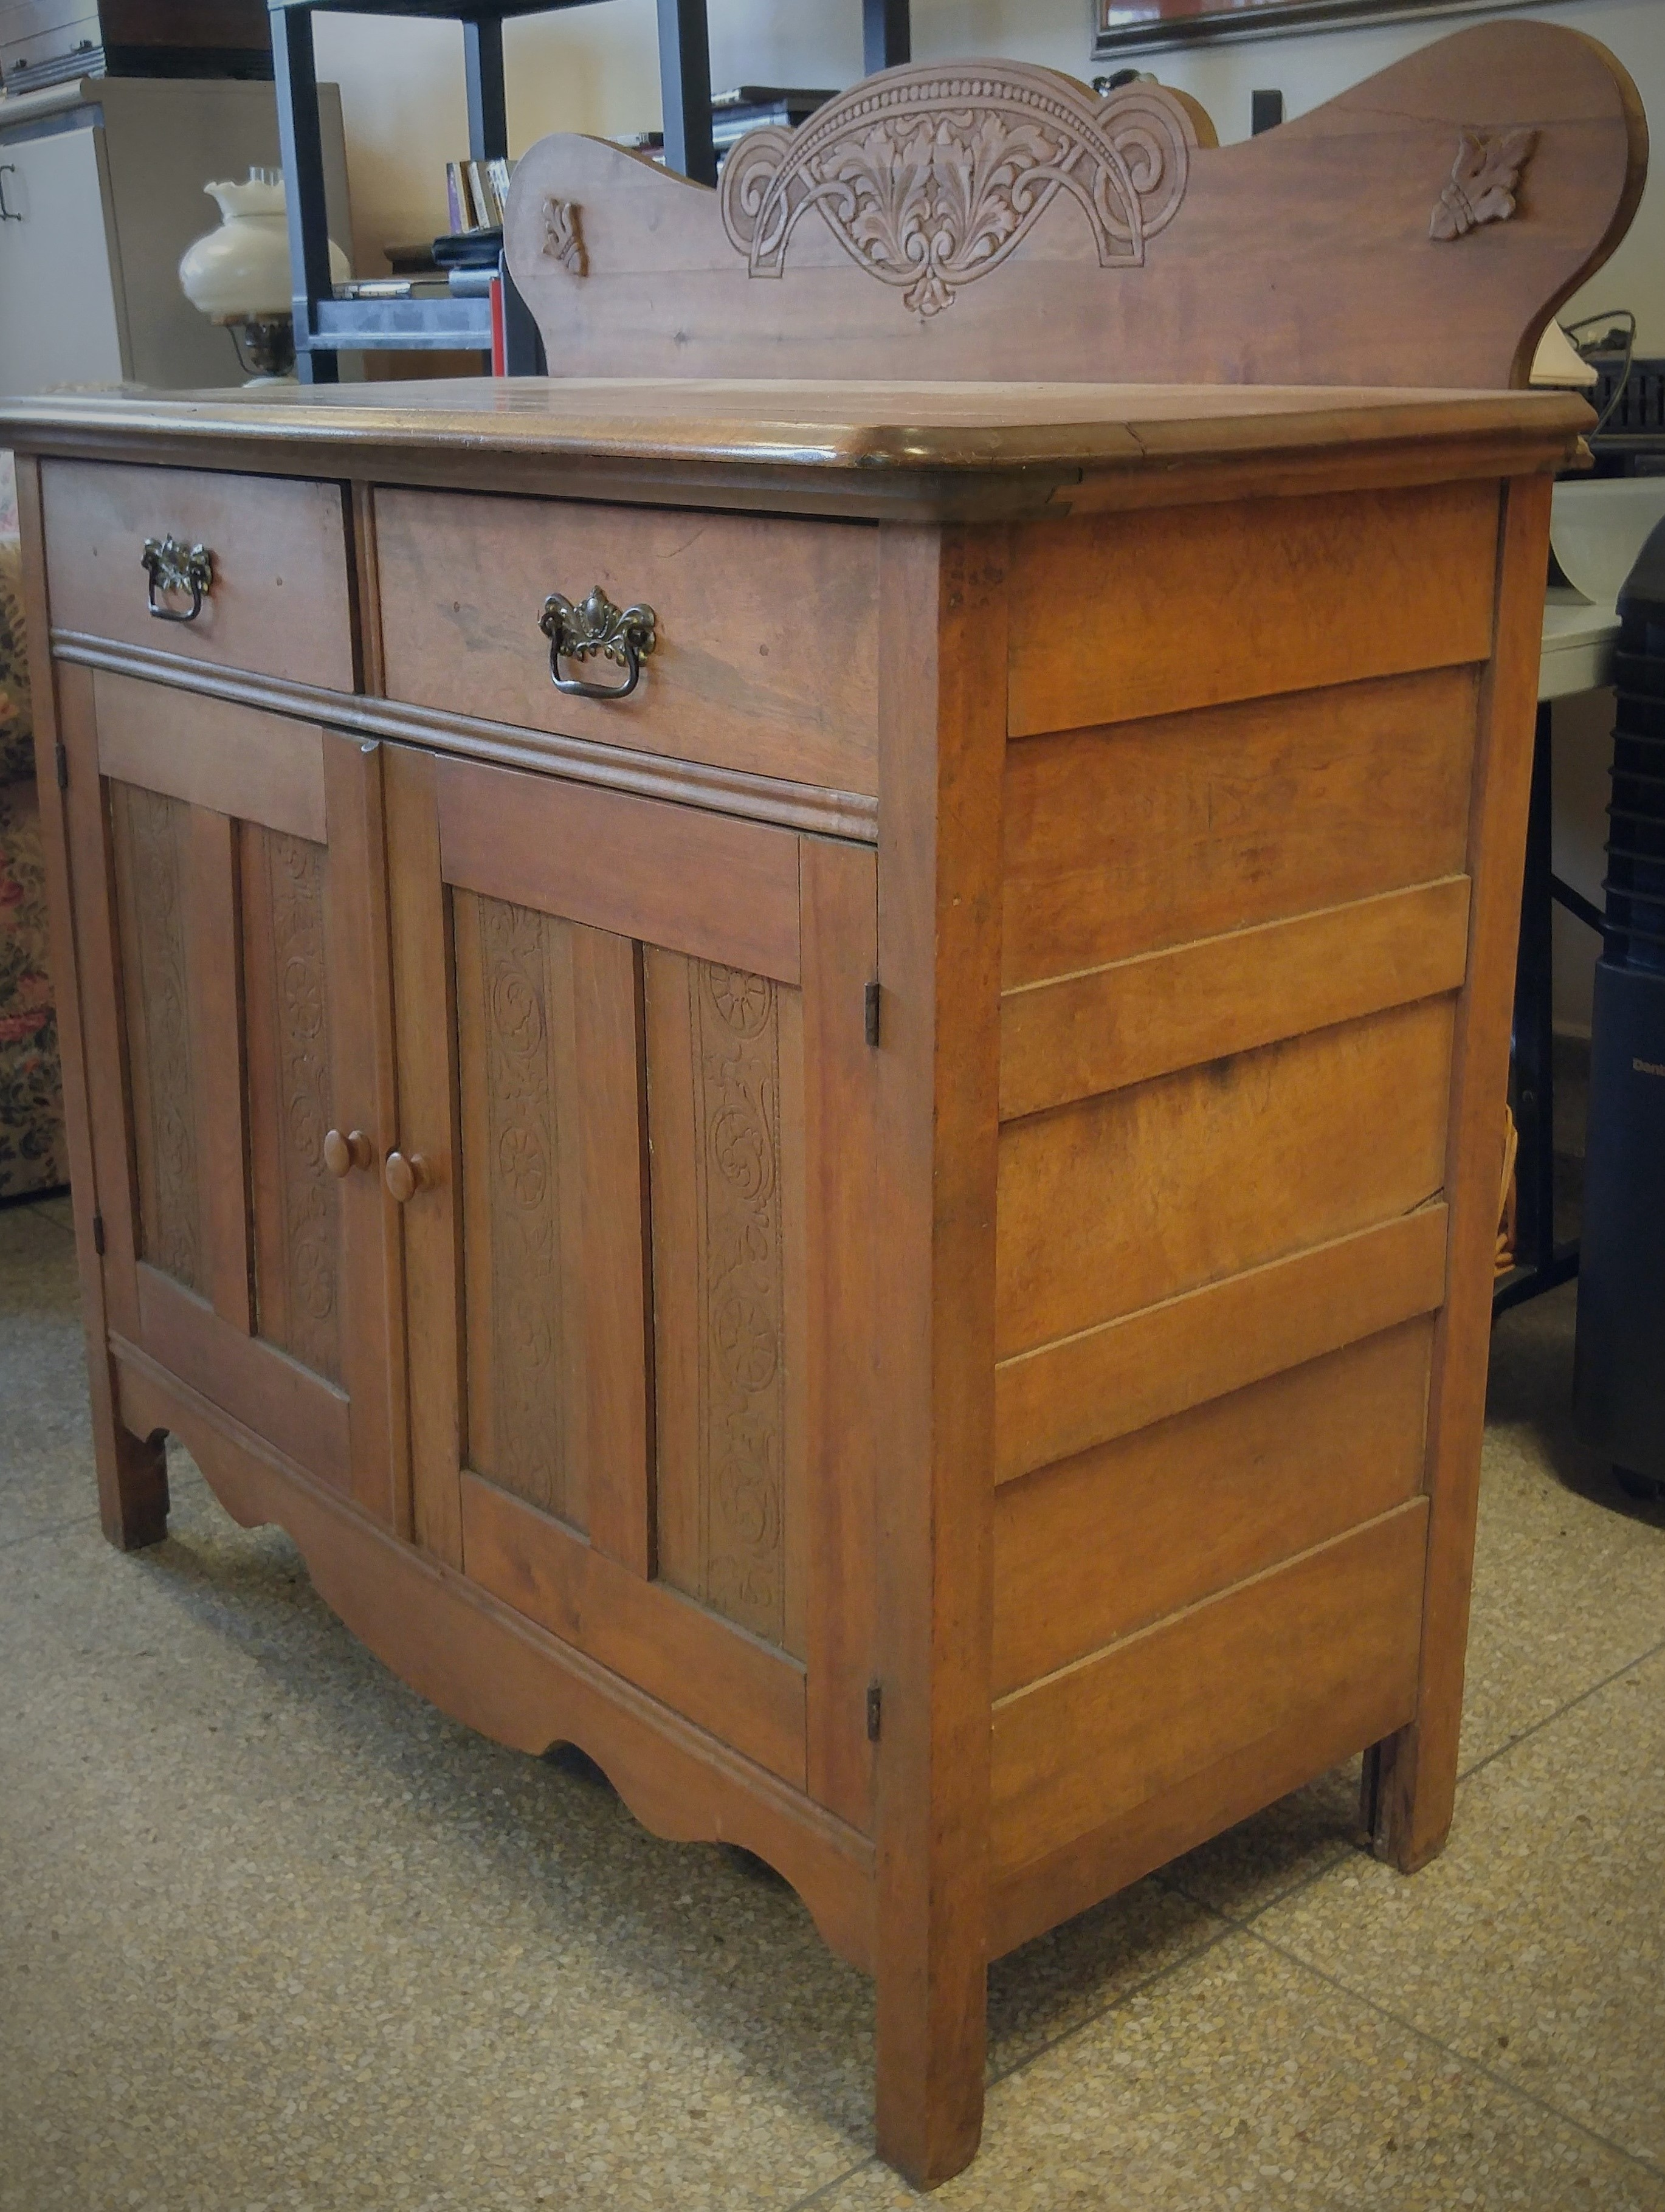 44 inch Sideboard